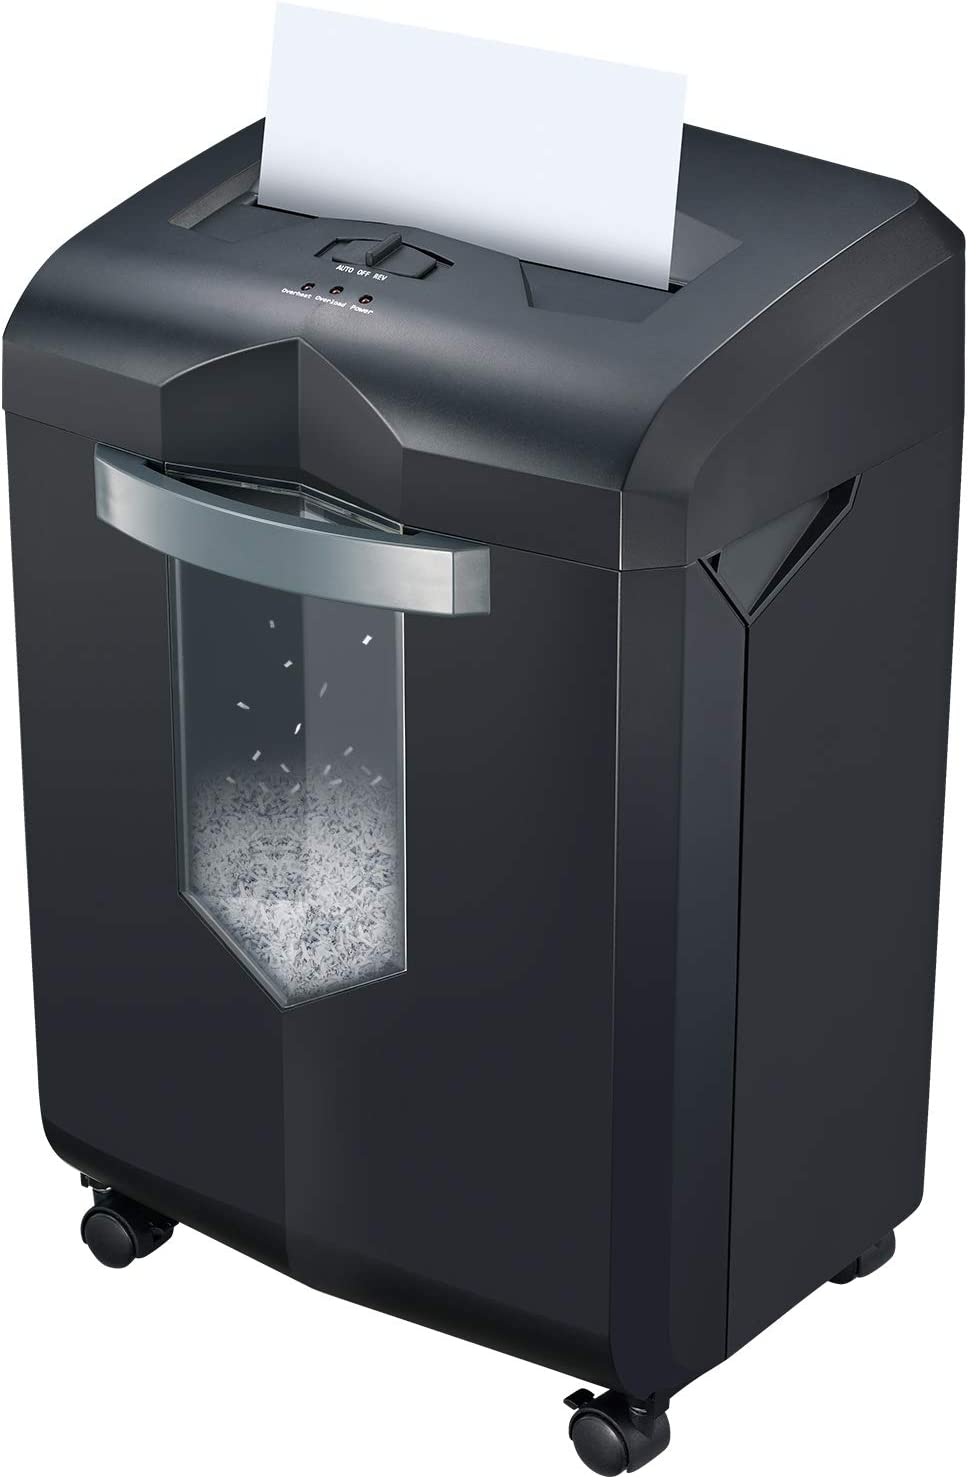 Bonsaii 14-Sheet Micro-Cut Paper Shredder, Heavy Duty Paper/CD/Card Ultra Quiet Shredder for Home Office with 6-Gallon Pullout Wastebasket and 4 Casters, 60 Minutes Running Time, Black